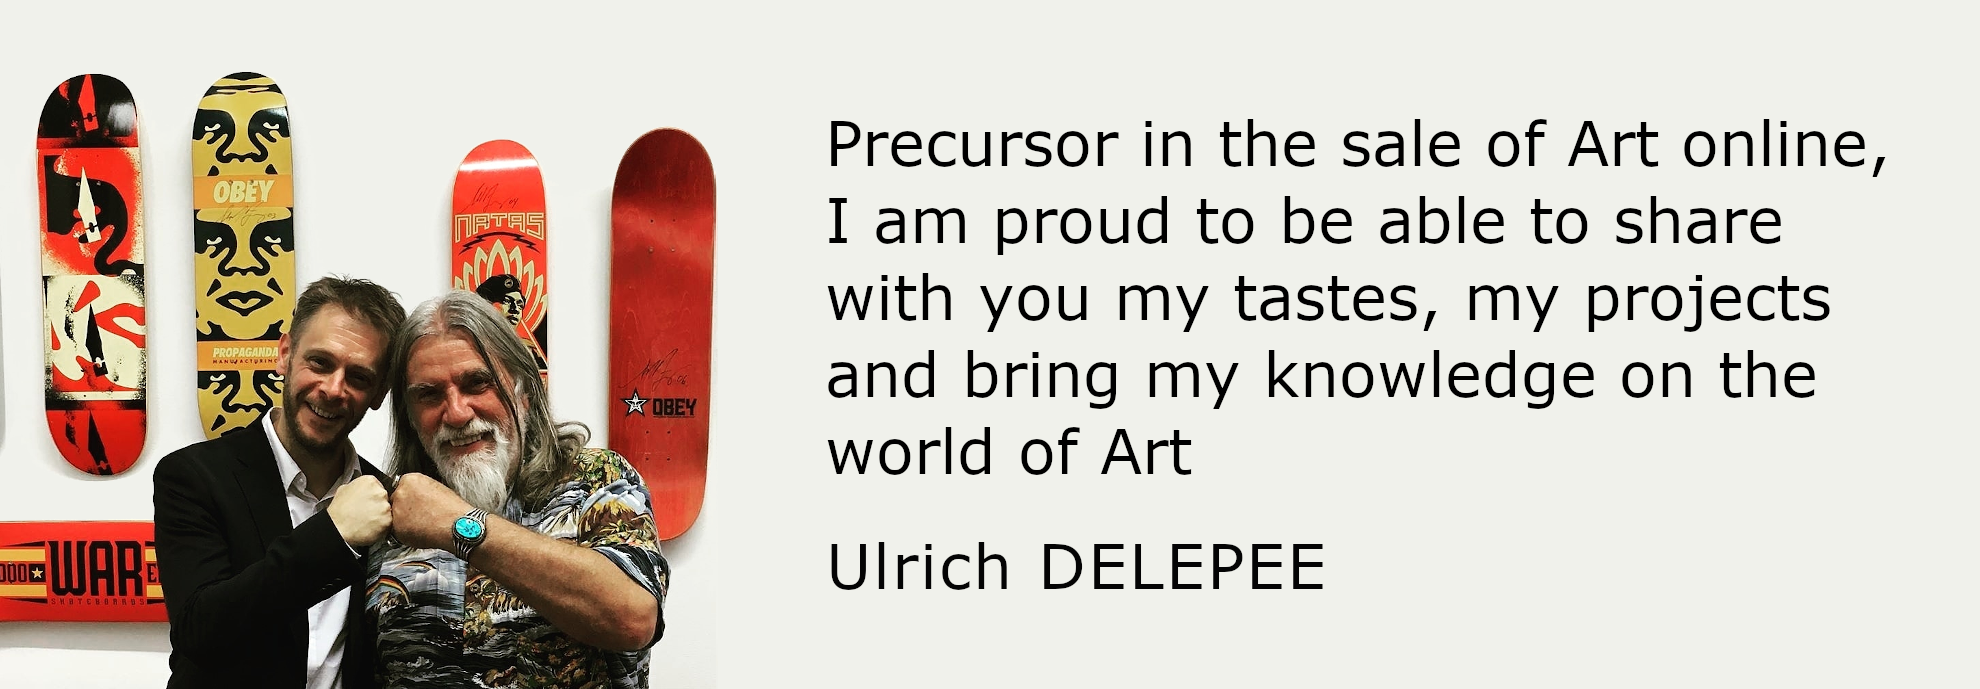 Ulrich DELEPEE, Precursor in the sale of Art online with Artsuggest.com